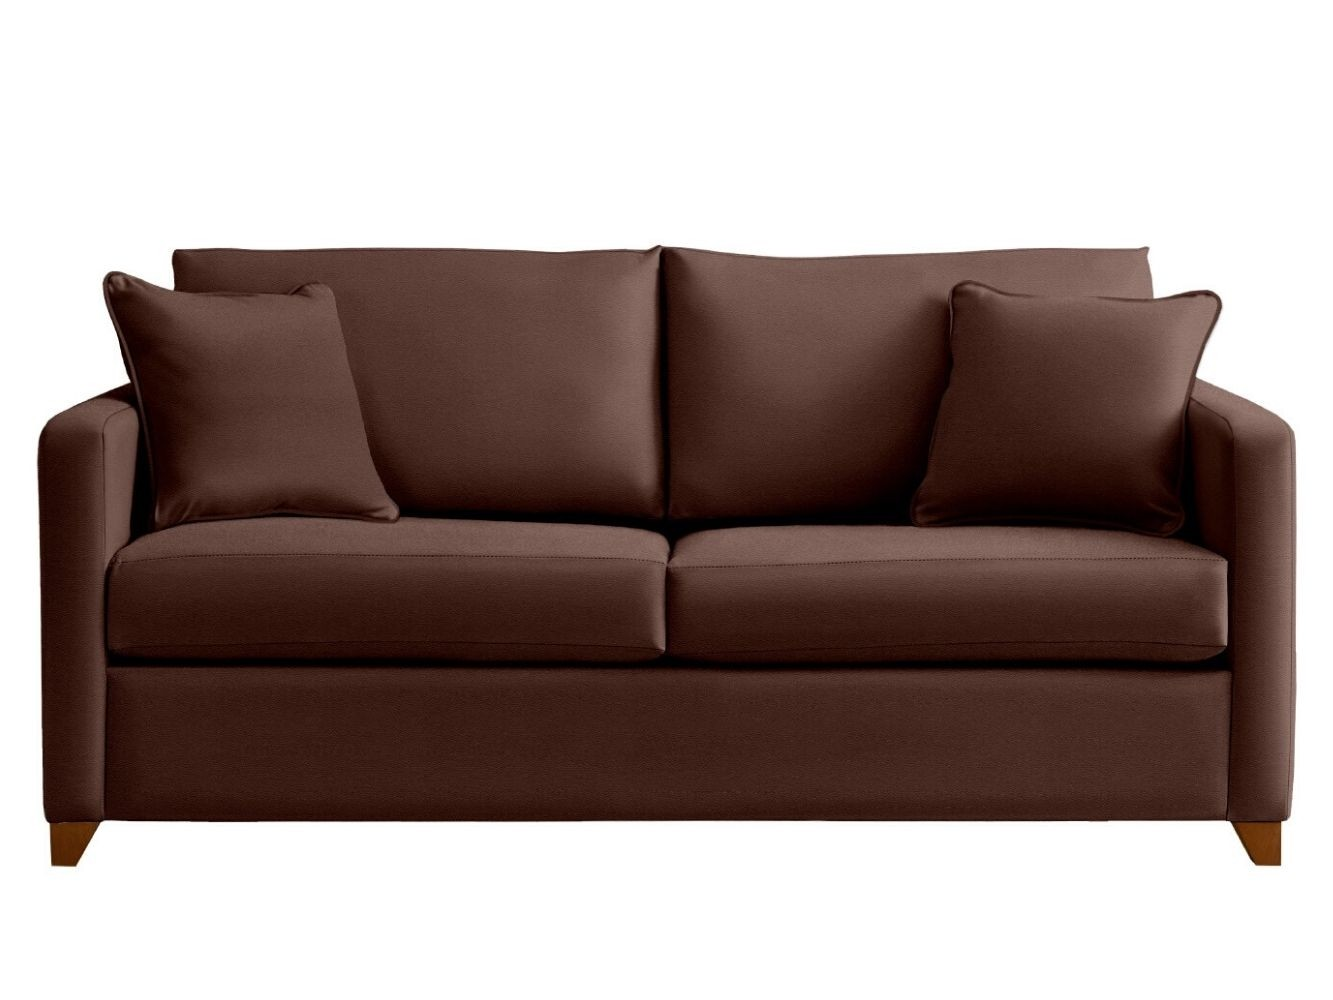 This is how I look in Leather Tan with reflex foam seat cushions